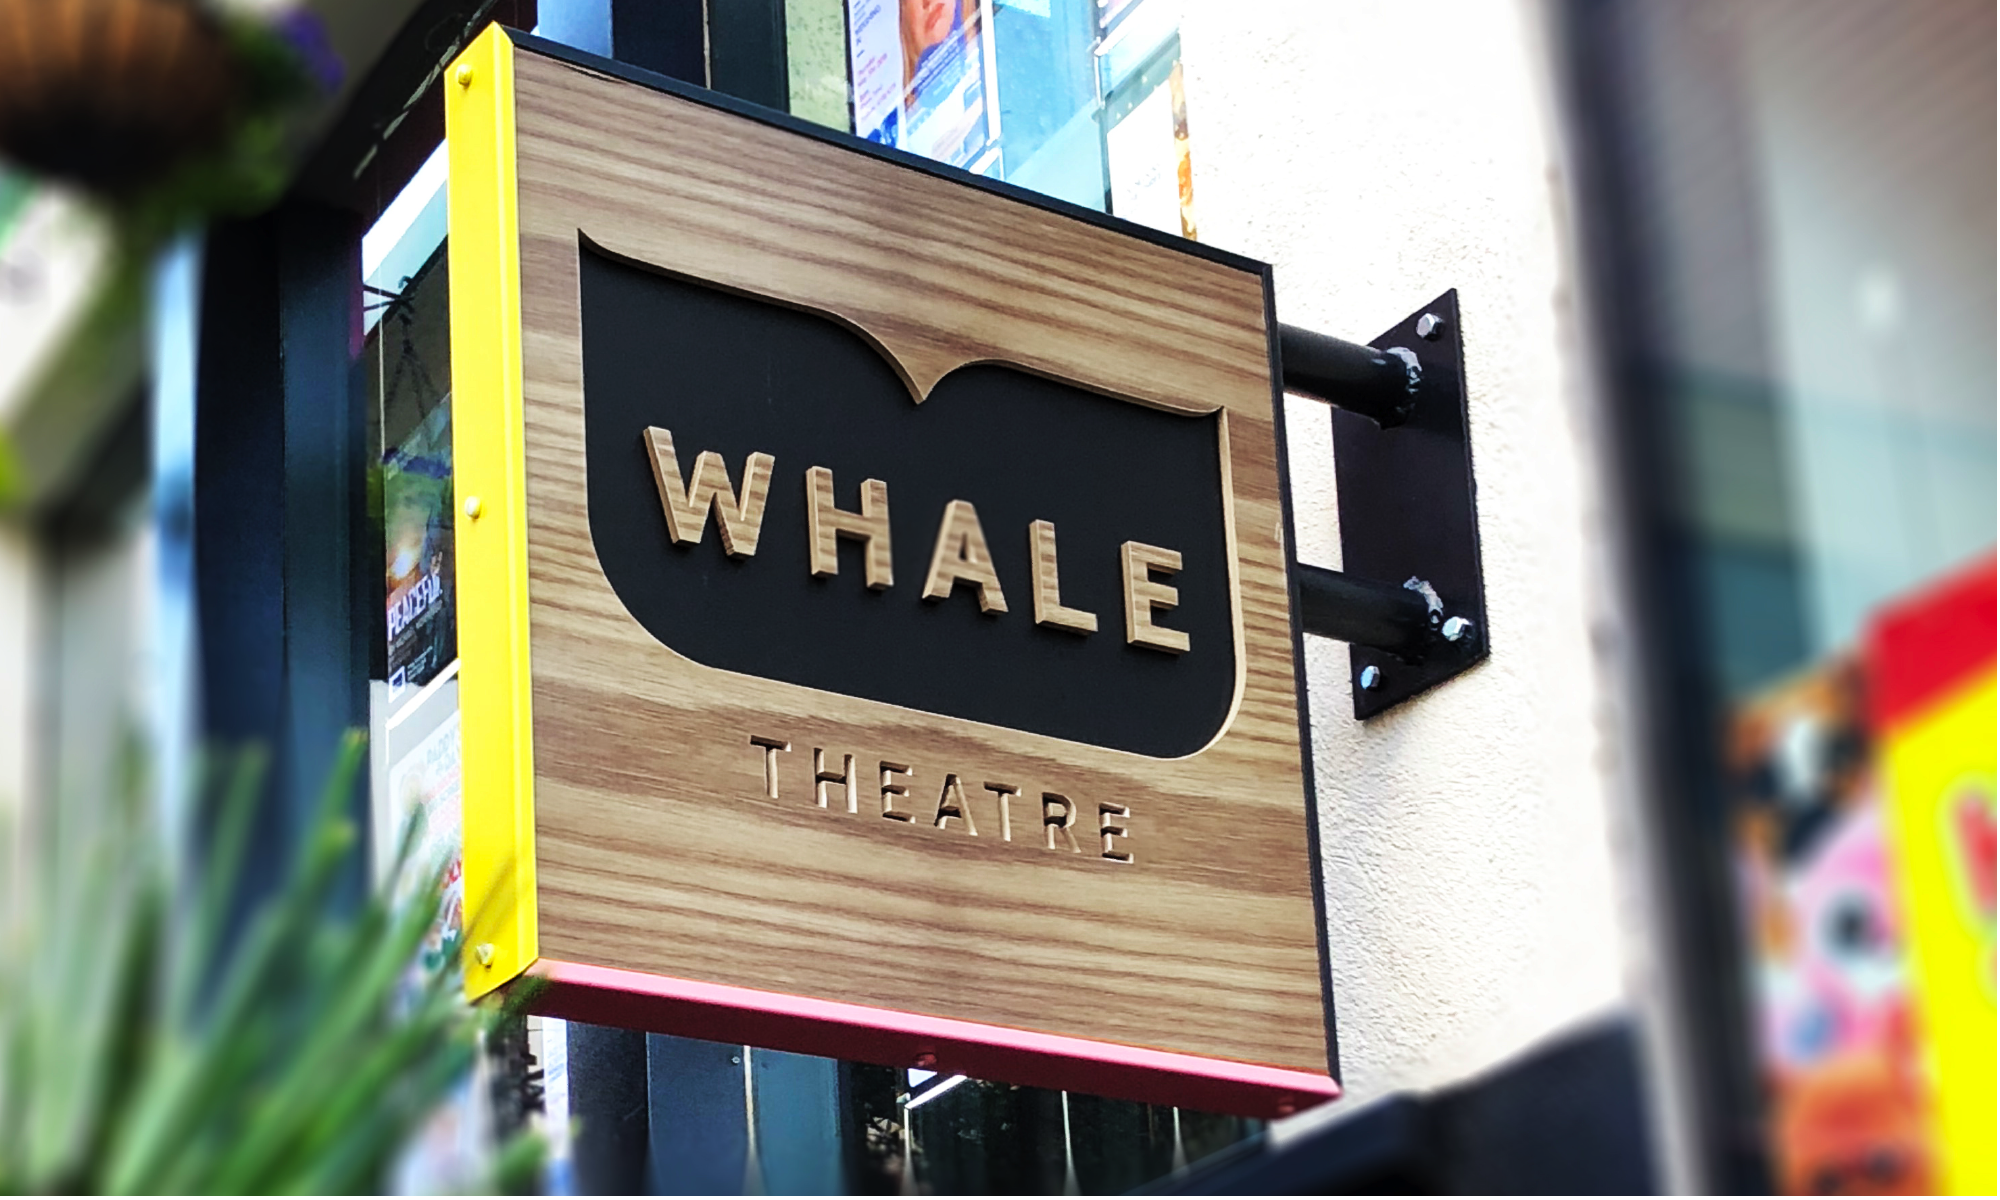 Cover image: The Whale Theatre